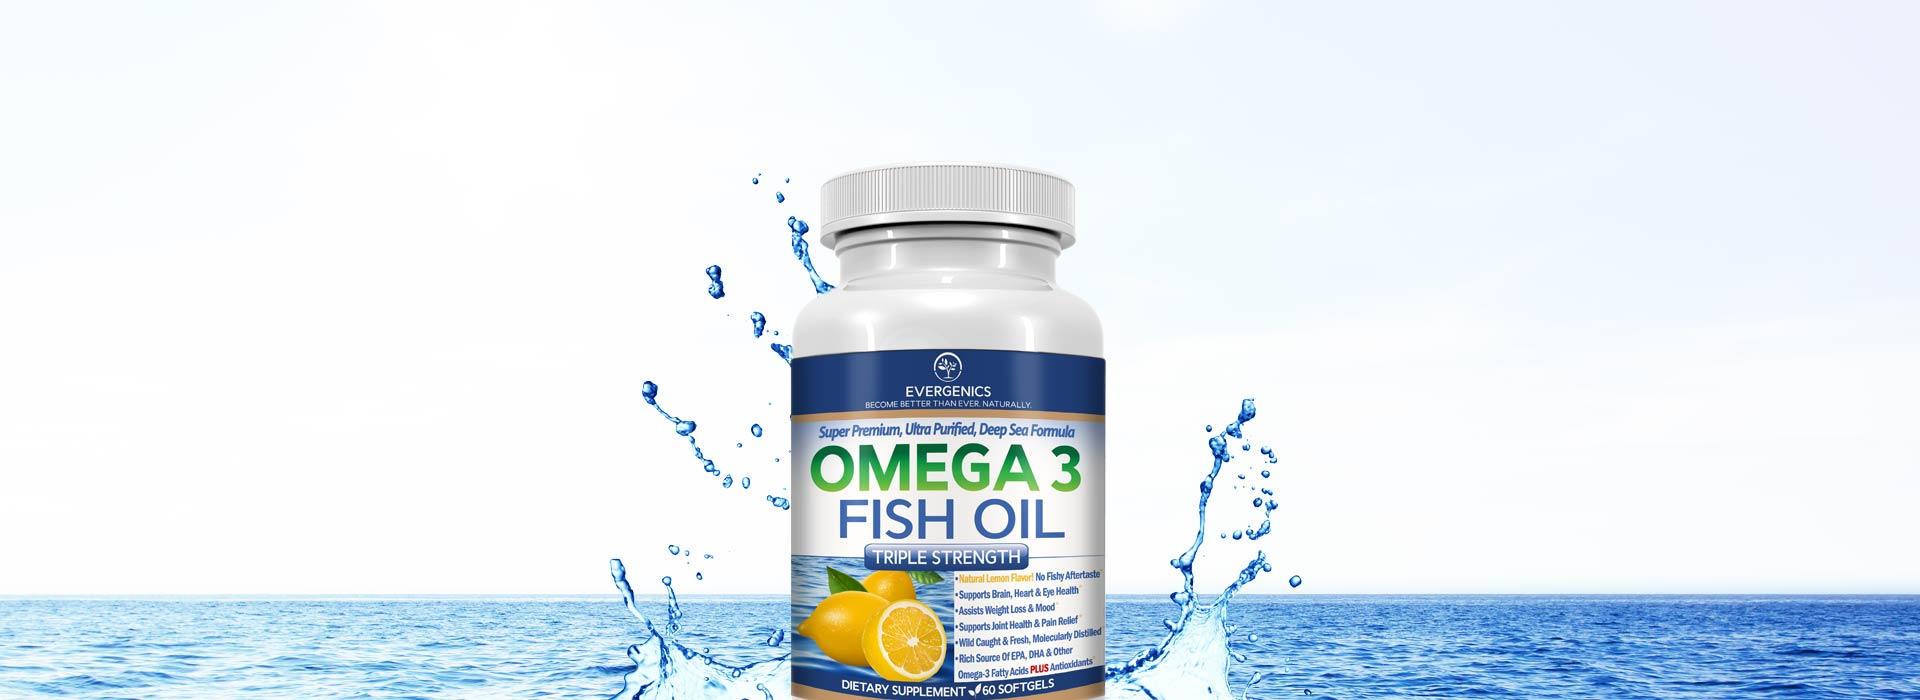 Omega 3 Fish Oil, Super Premium Wild Caught Formula From Evergenics